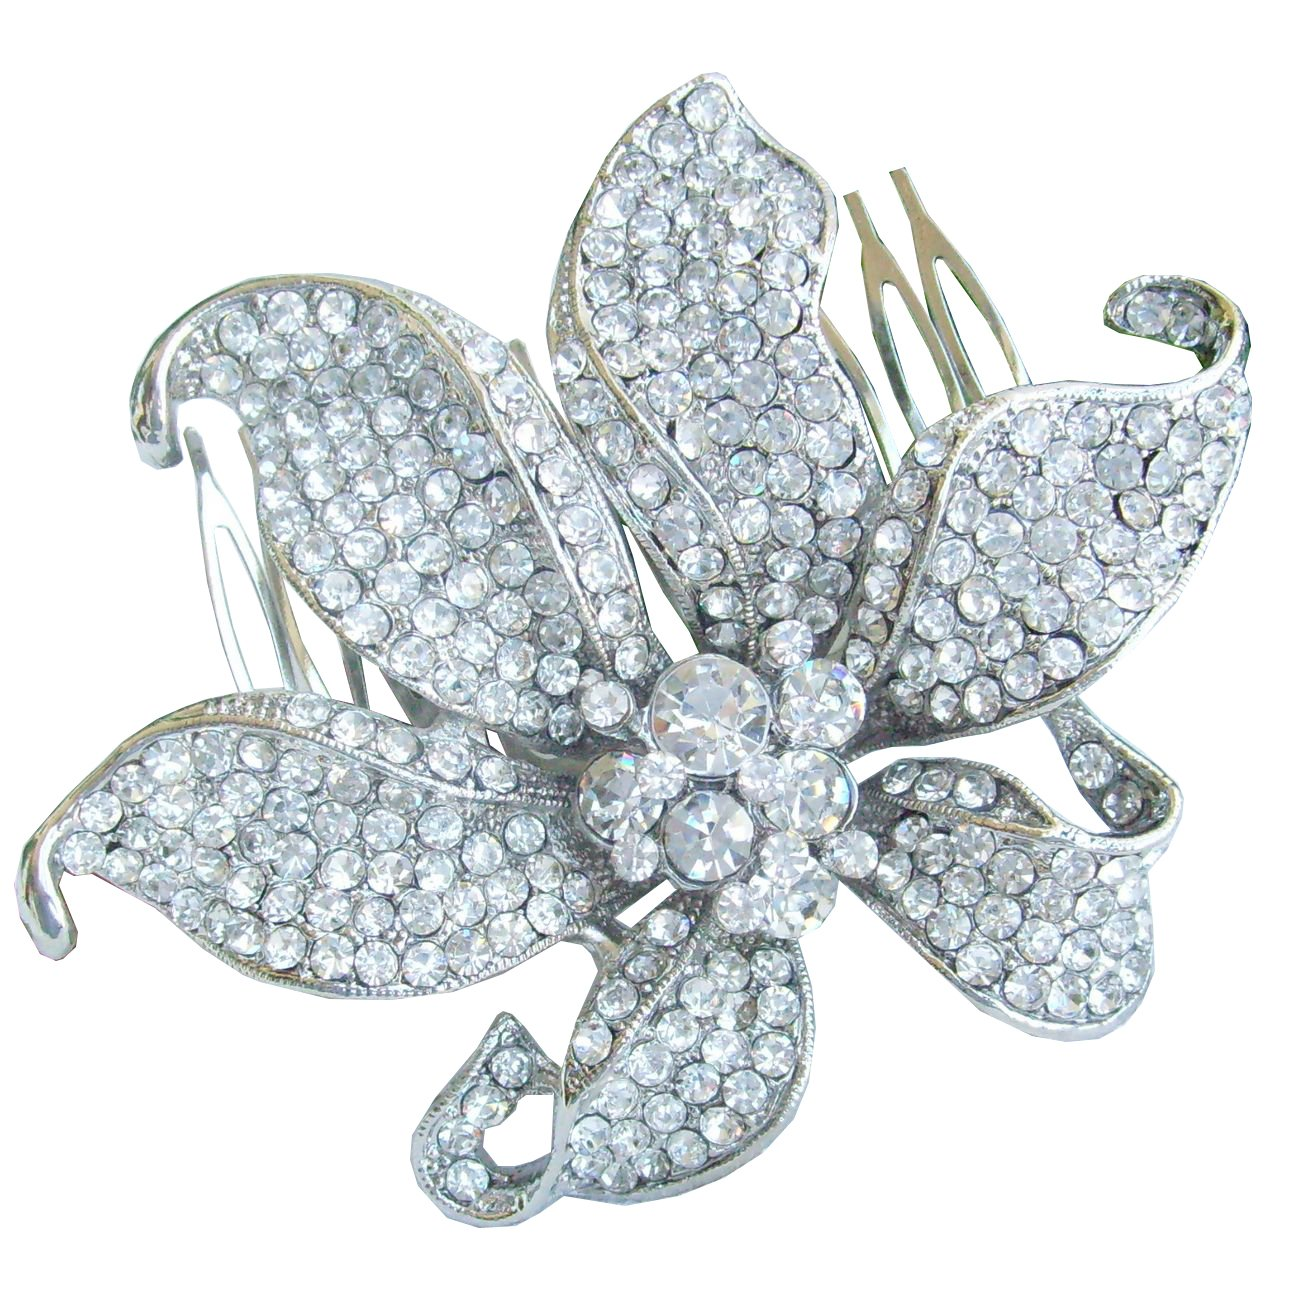 Sindary 3.74 Inch Silver-tone Clear Rhinestone Crystal Flower Hair Comb Wedding Headpiece